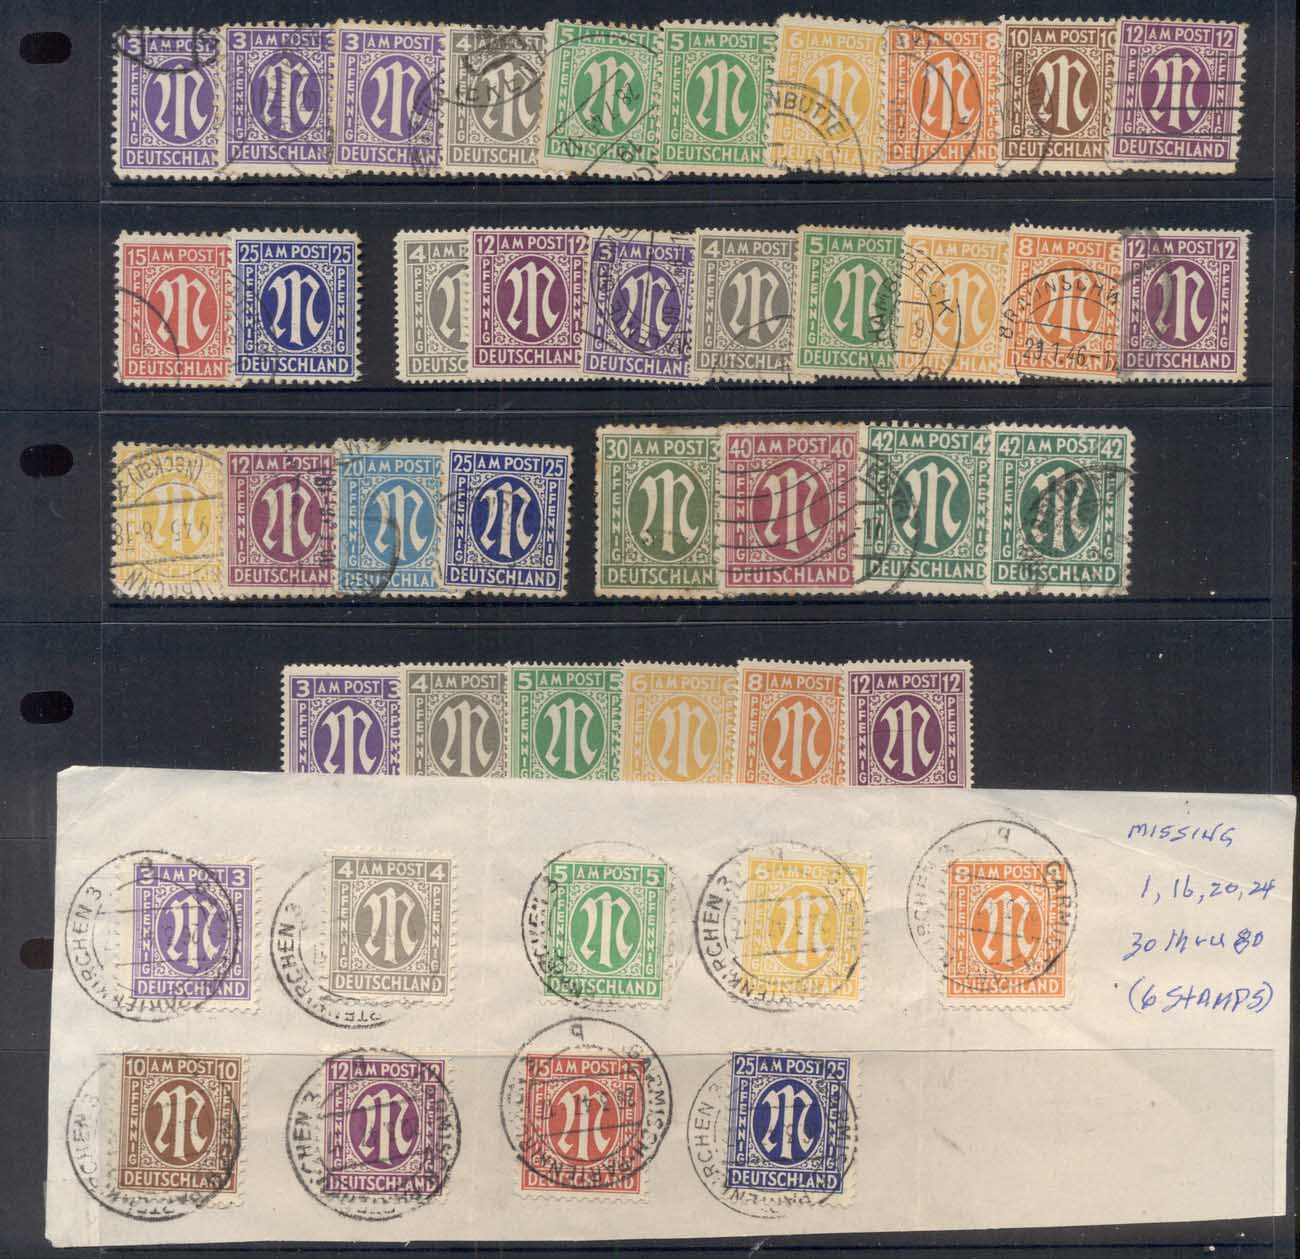 Germany 1945-46 AMG mixed printings assortment, some tones, Mint & used